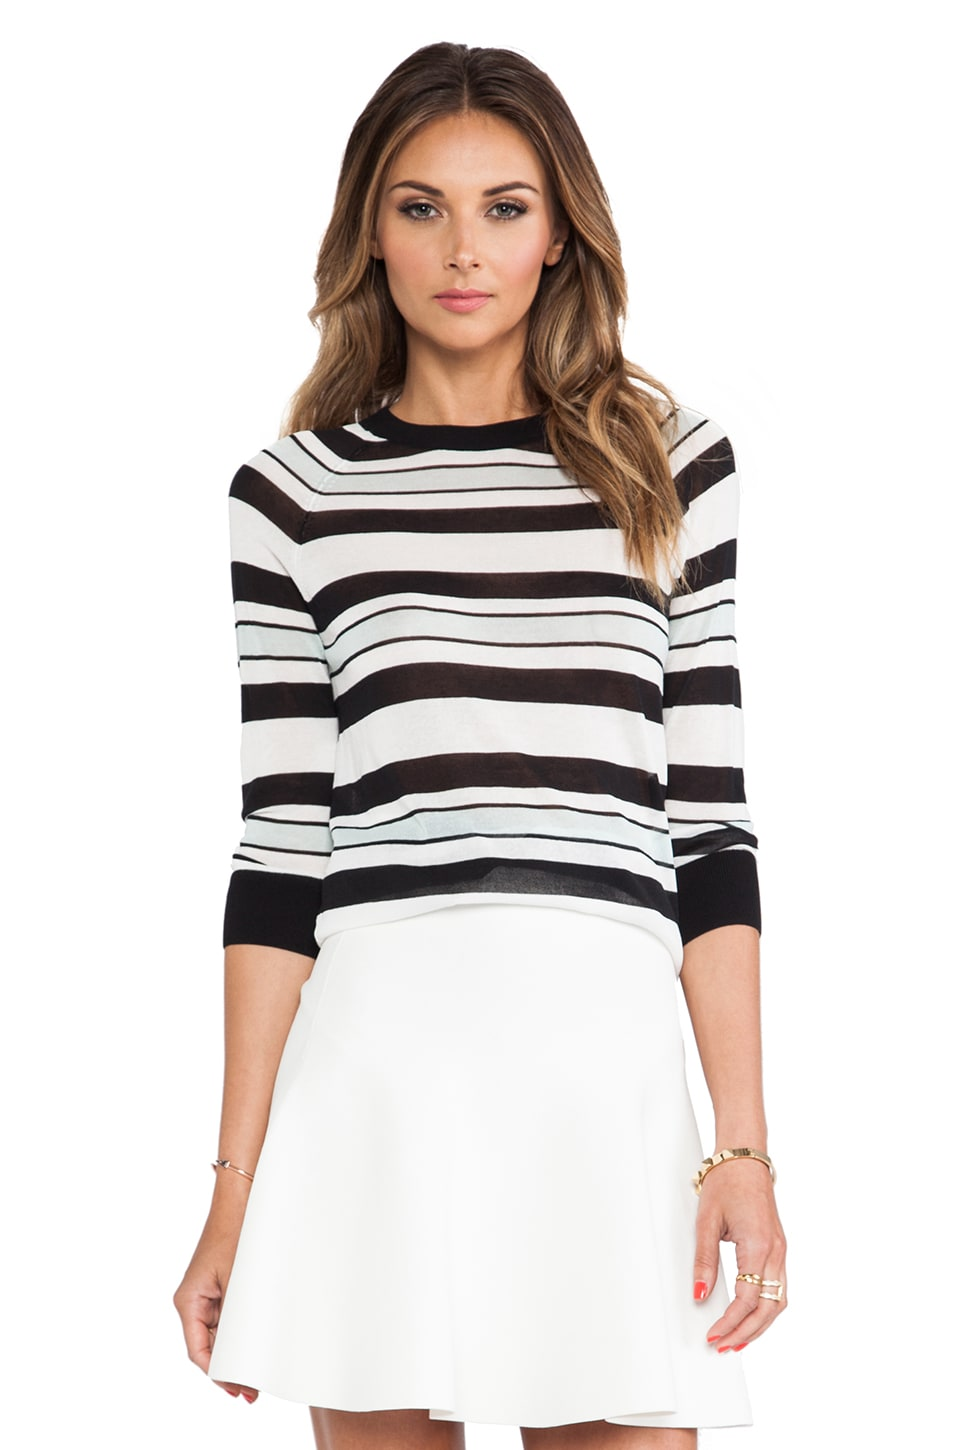 A.L.C. Theo Stripe Sweater in White/Black/Mint